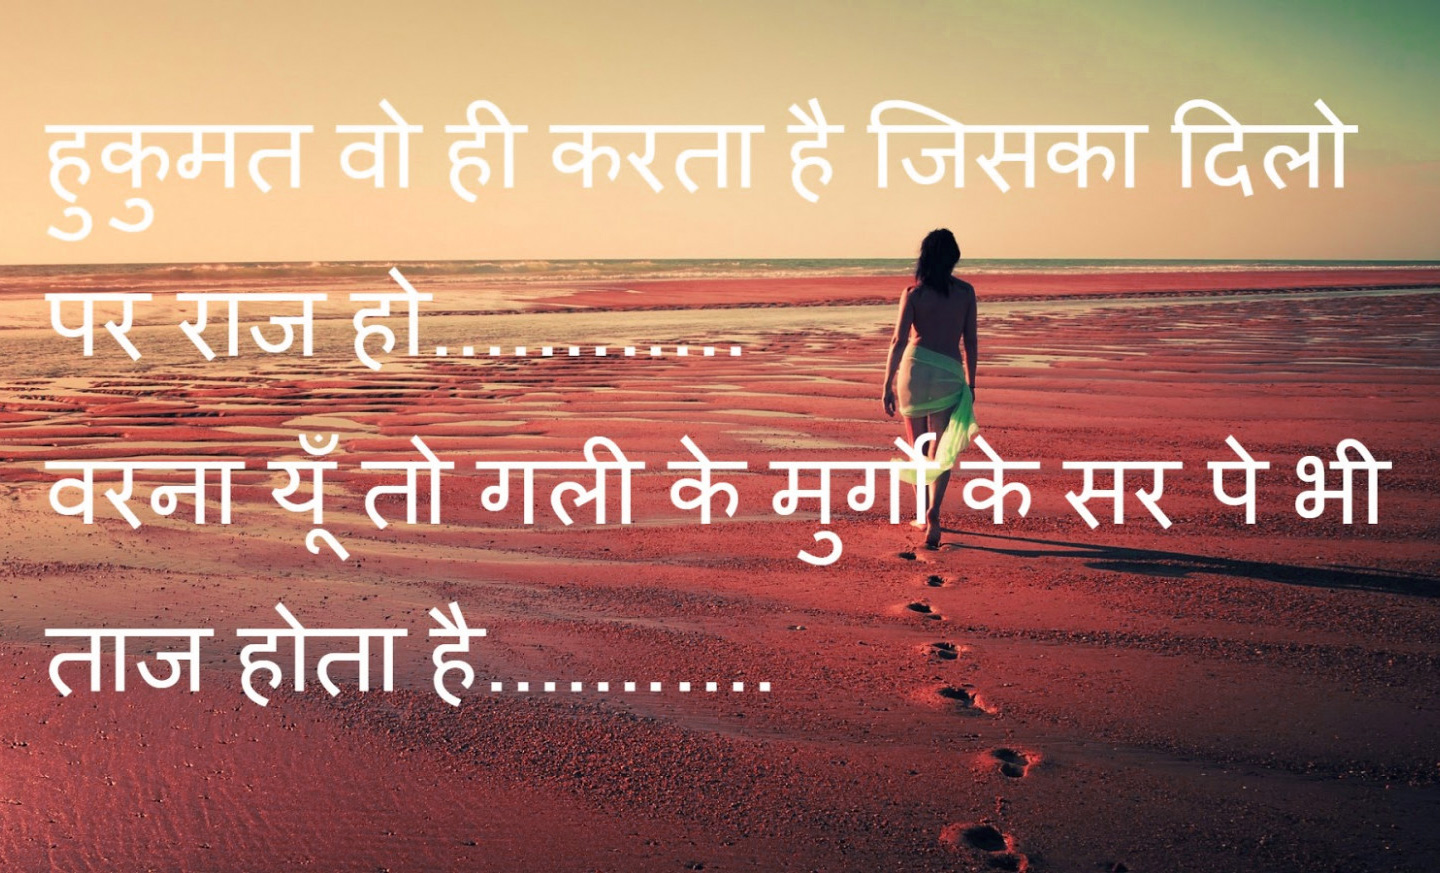 Shayari Wallpaper 69